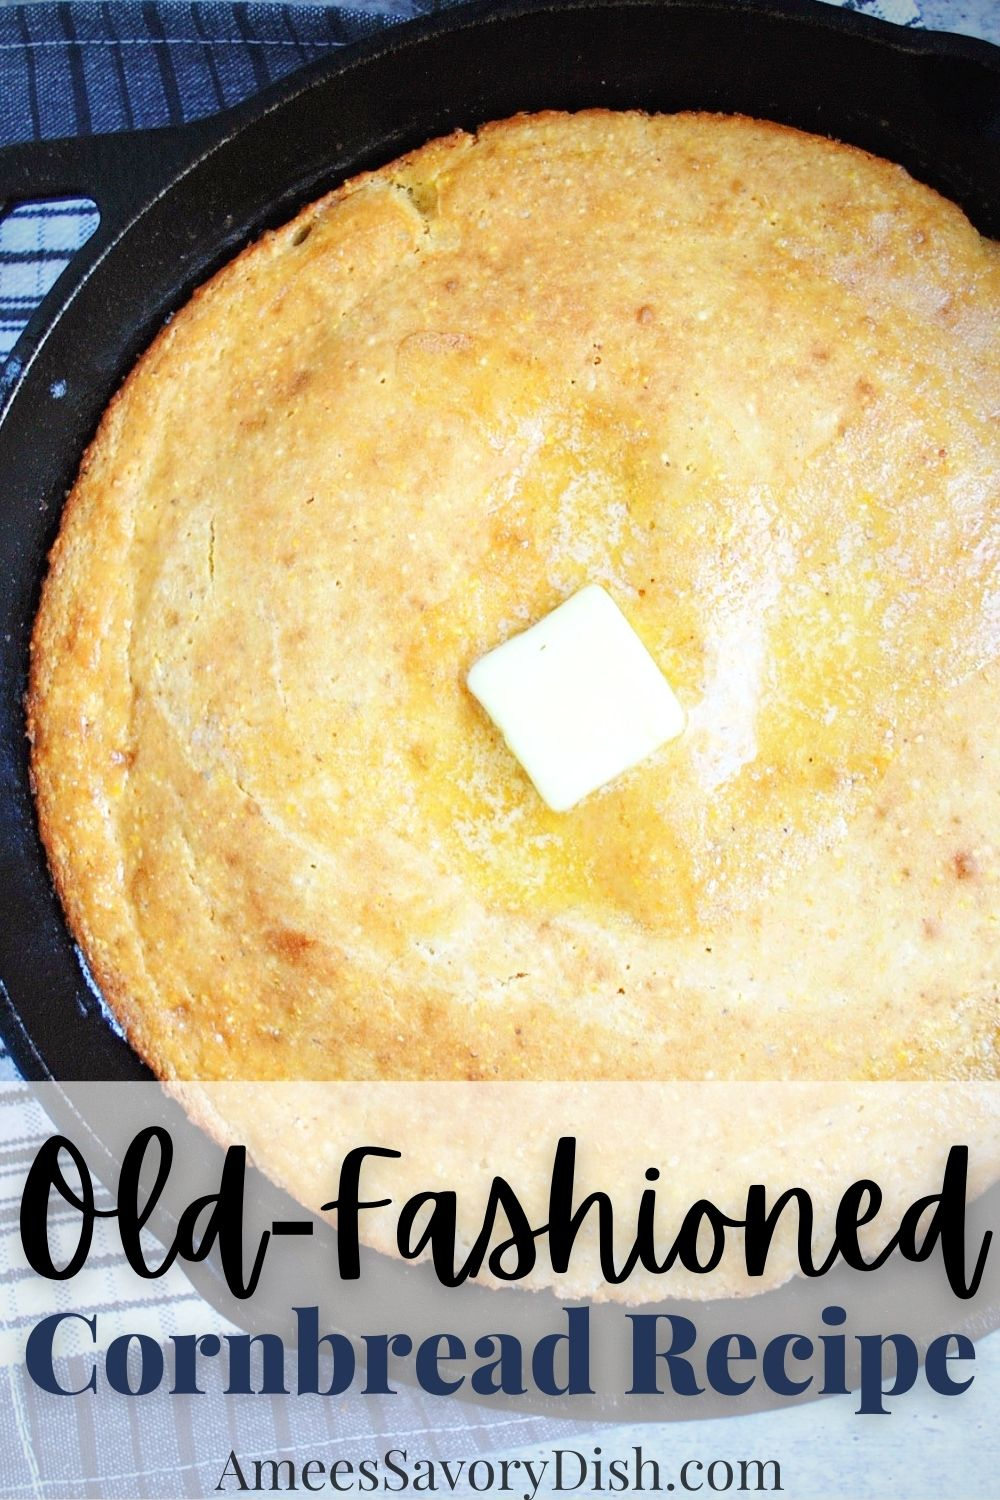 This deliciously easy vintage old fashioned cornbread recipe uses only a few simple ingredients, including buttermilk, whole grain flour, butter and egg. It's a classic must-try recipe! via @Ameessavorydish